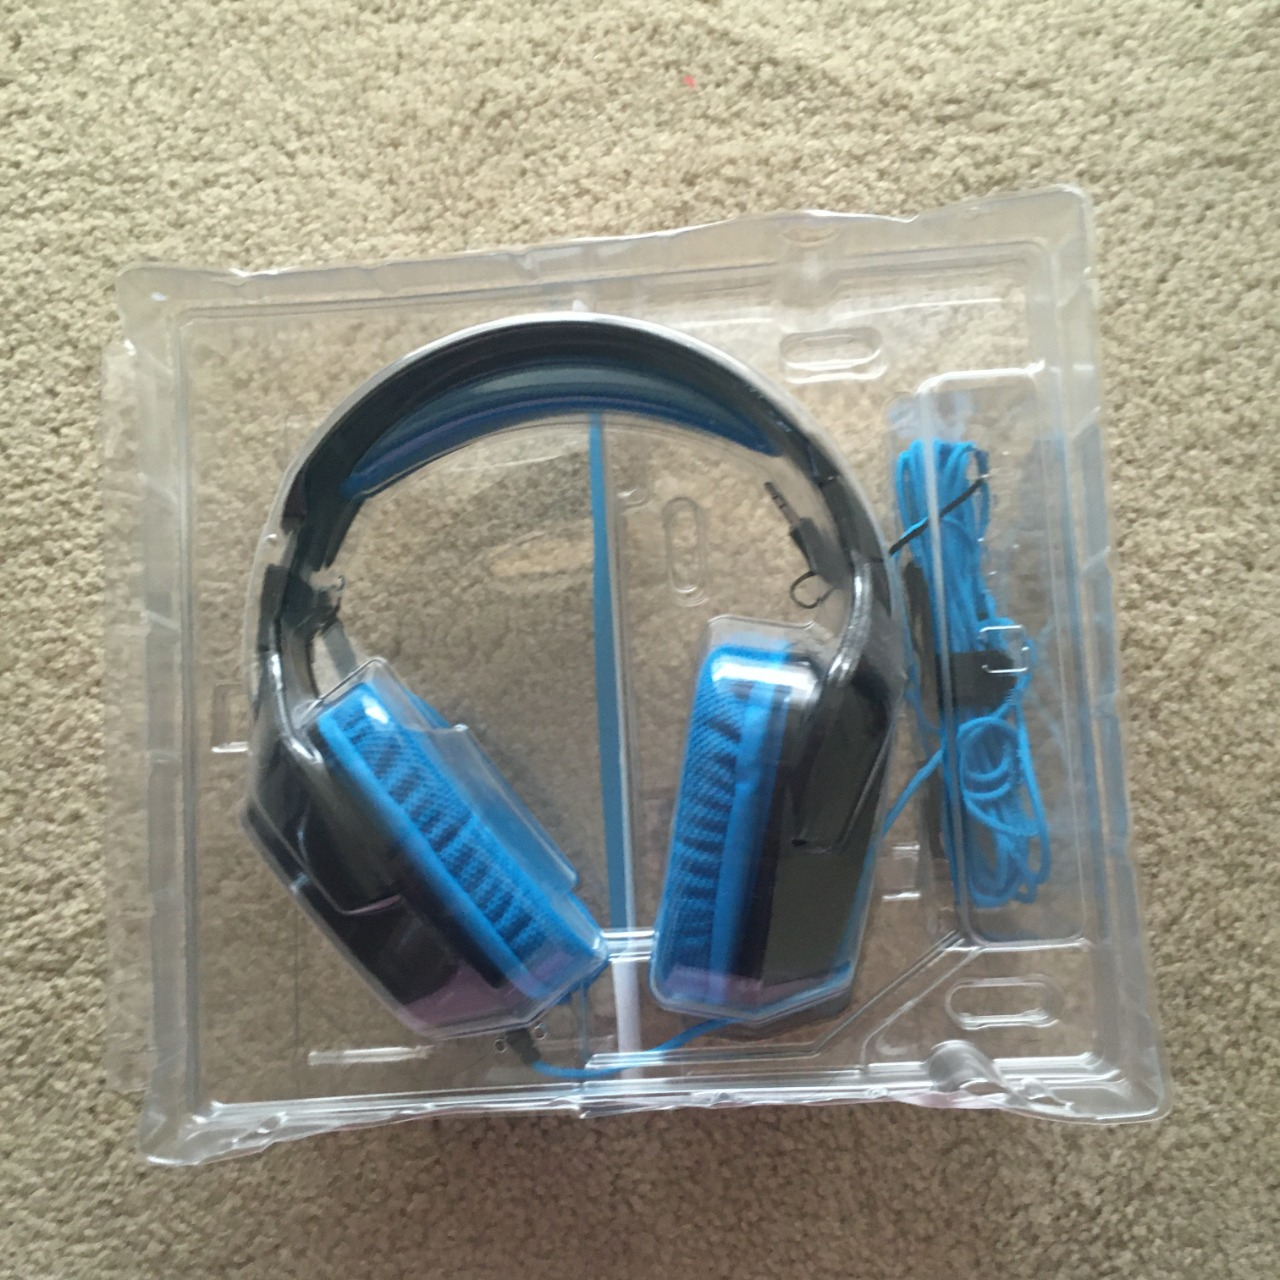 Logitech G430 Gaming Headset, Blue/Black - Used As New